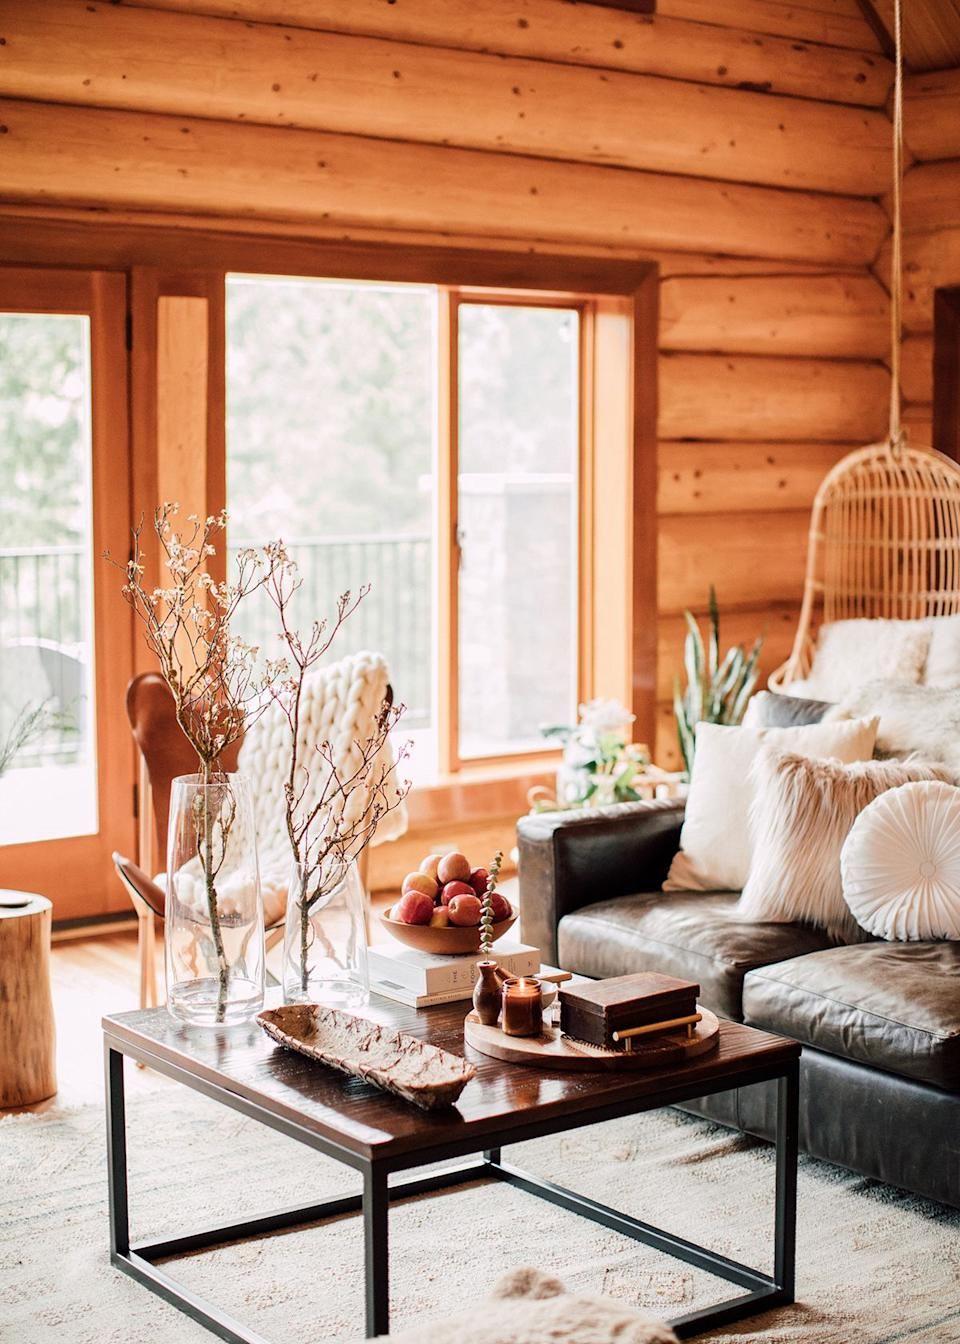 Built in 1995, the new-age log cabin, comprised predominantly of large wooden logs, is complete with soaring vaulted ceilings. Furnished with earthy, mountain-inspired textures and tones, each room exudes warmth and coziness.